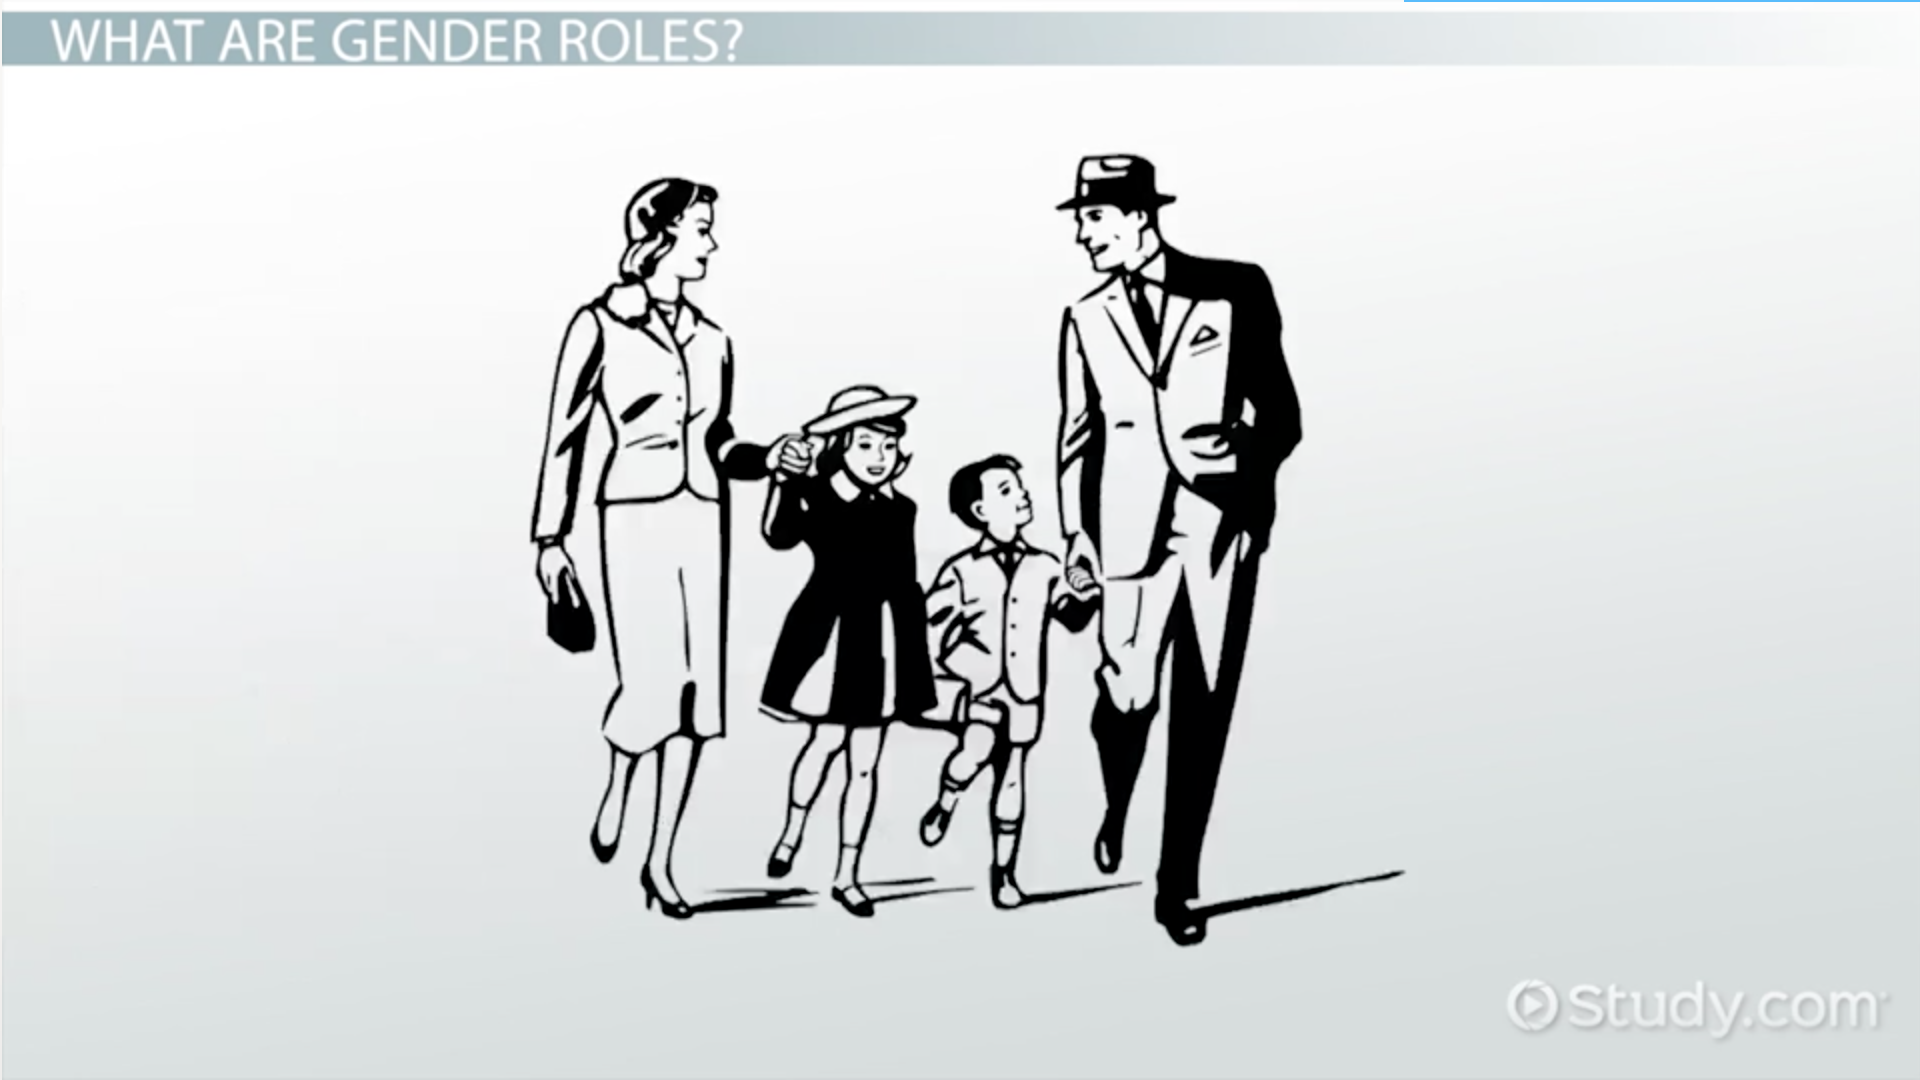 an analysis of gender roles for men in the american society Gender roles in society: reinforced gender roles for american men and women in the 1950s gender roles in 1950s america related study materials.